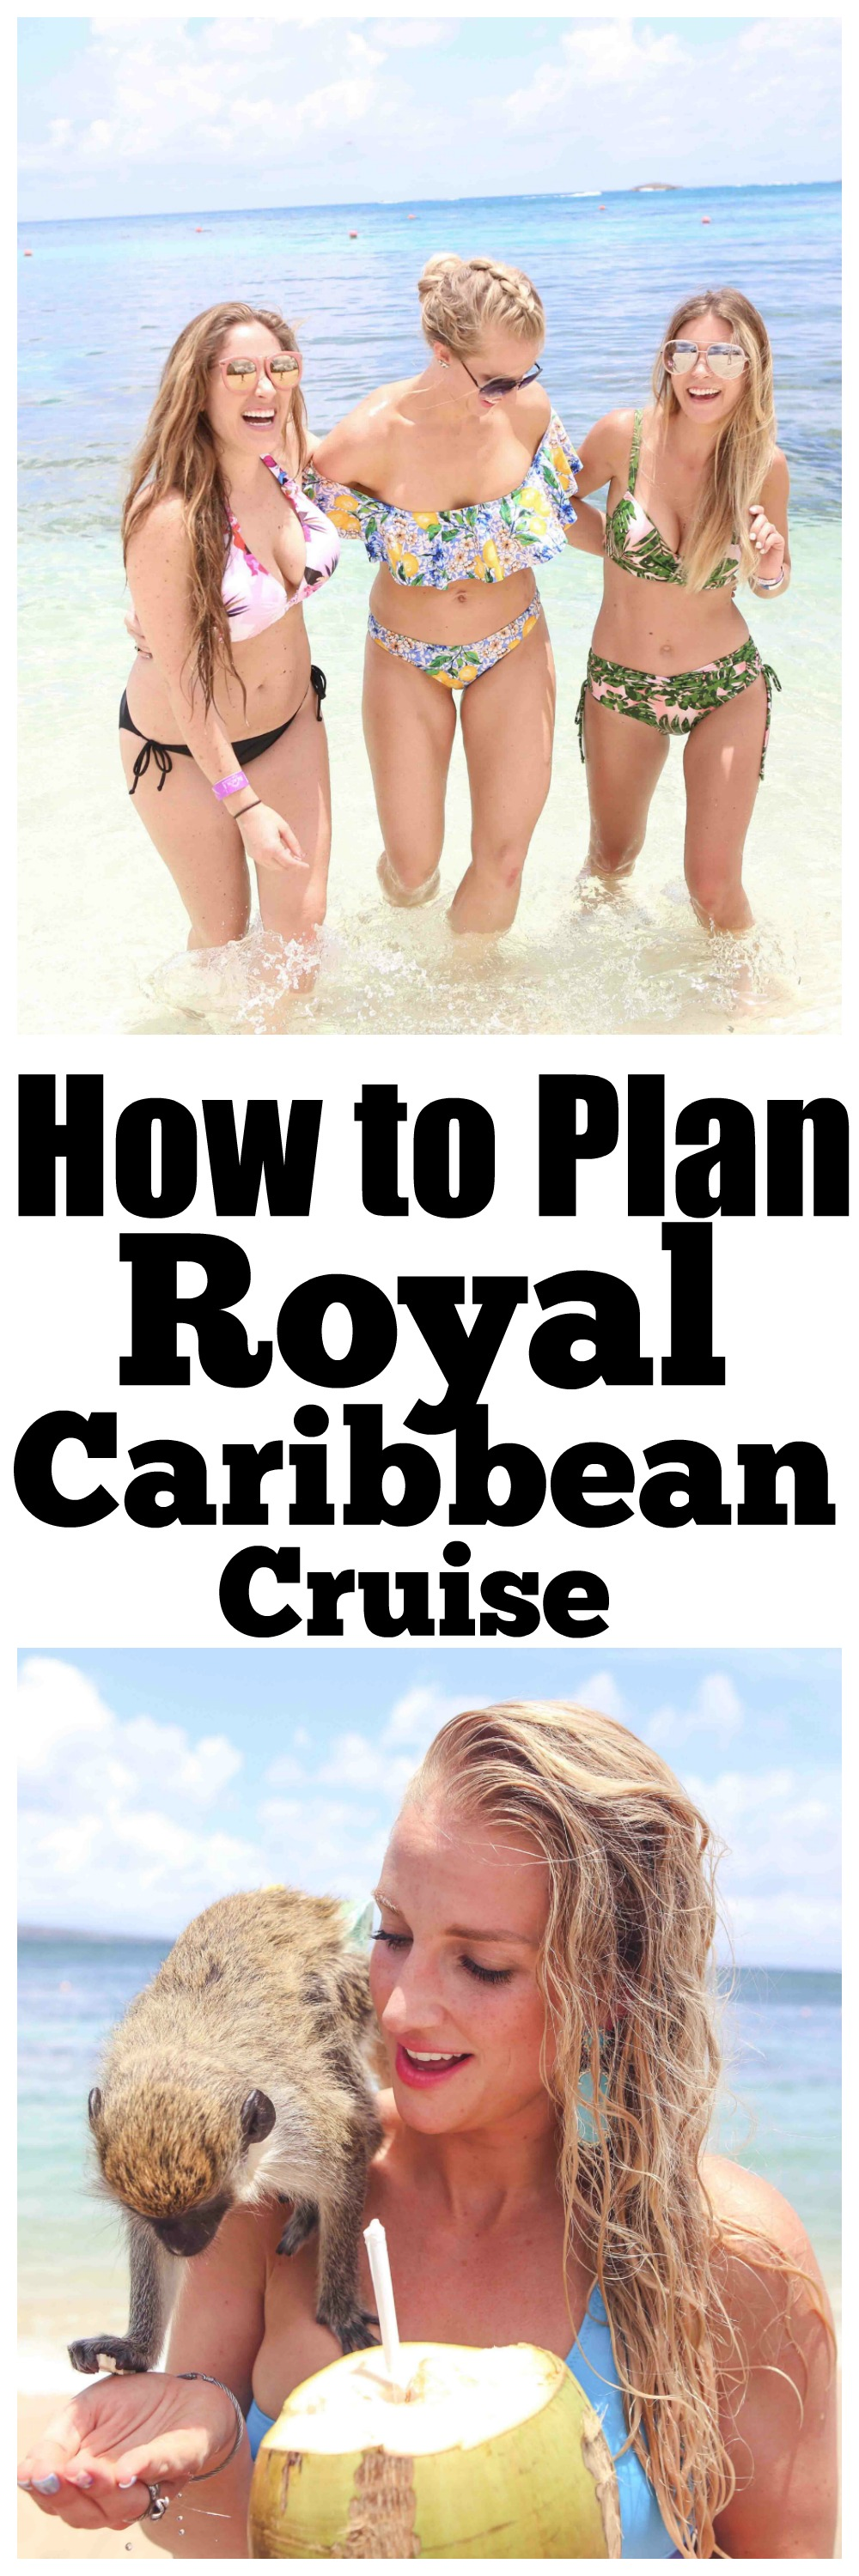 The Ultimate Royal Caribbean Cruise Planner by Atlanta blogger Happily Hughes